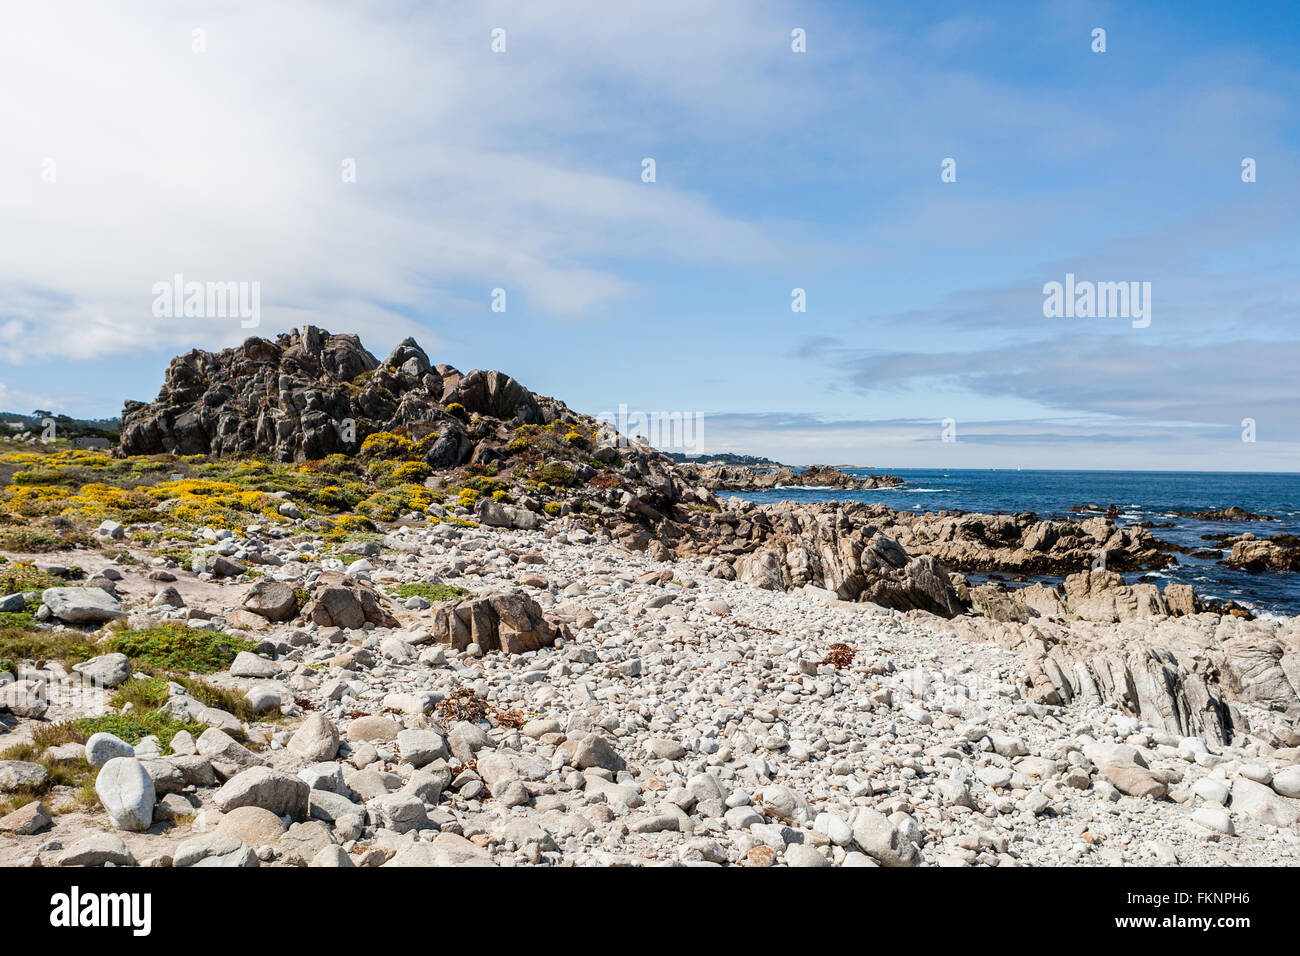 China Rock, 17 Mile Drive, Big Sur, California, USA - July 1, 2012: The 17 Mile Drive is a scenic road through Pacific - Stock Image